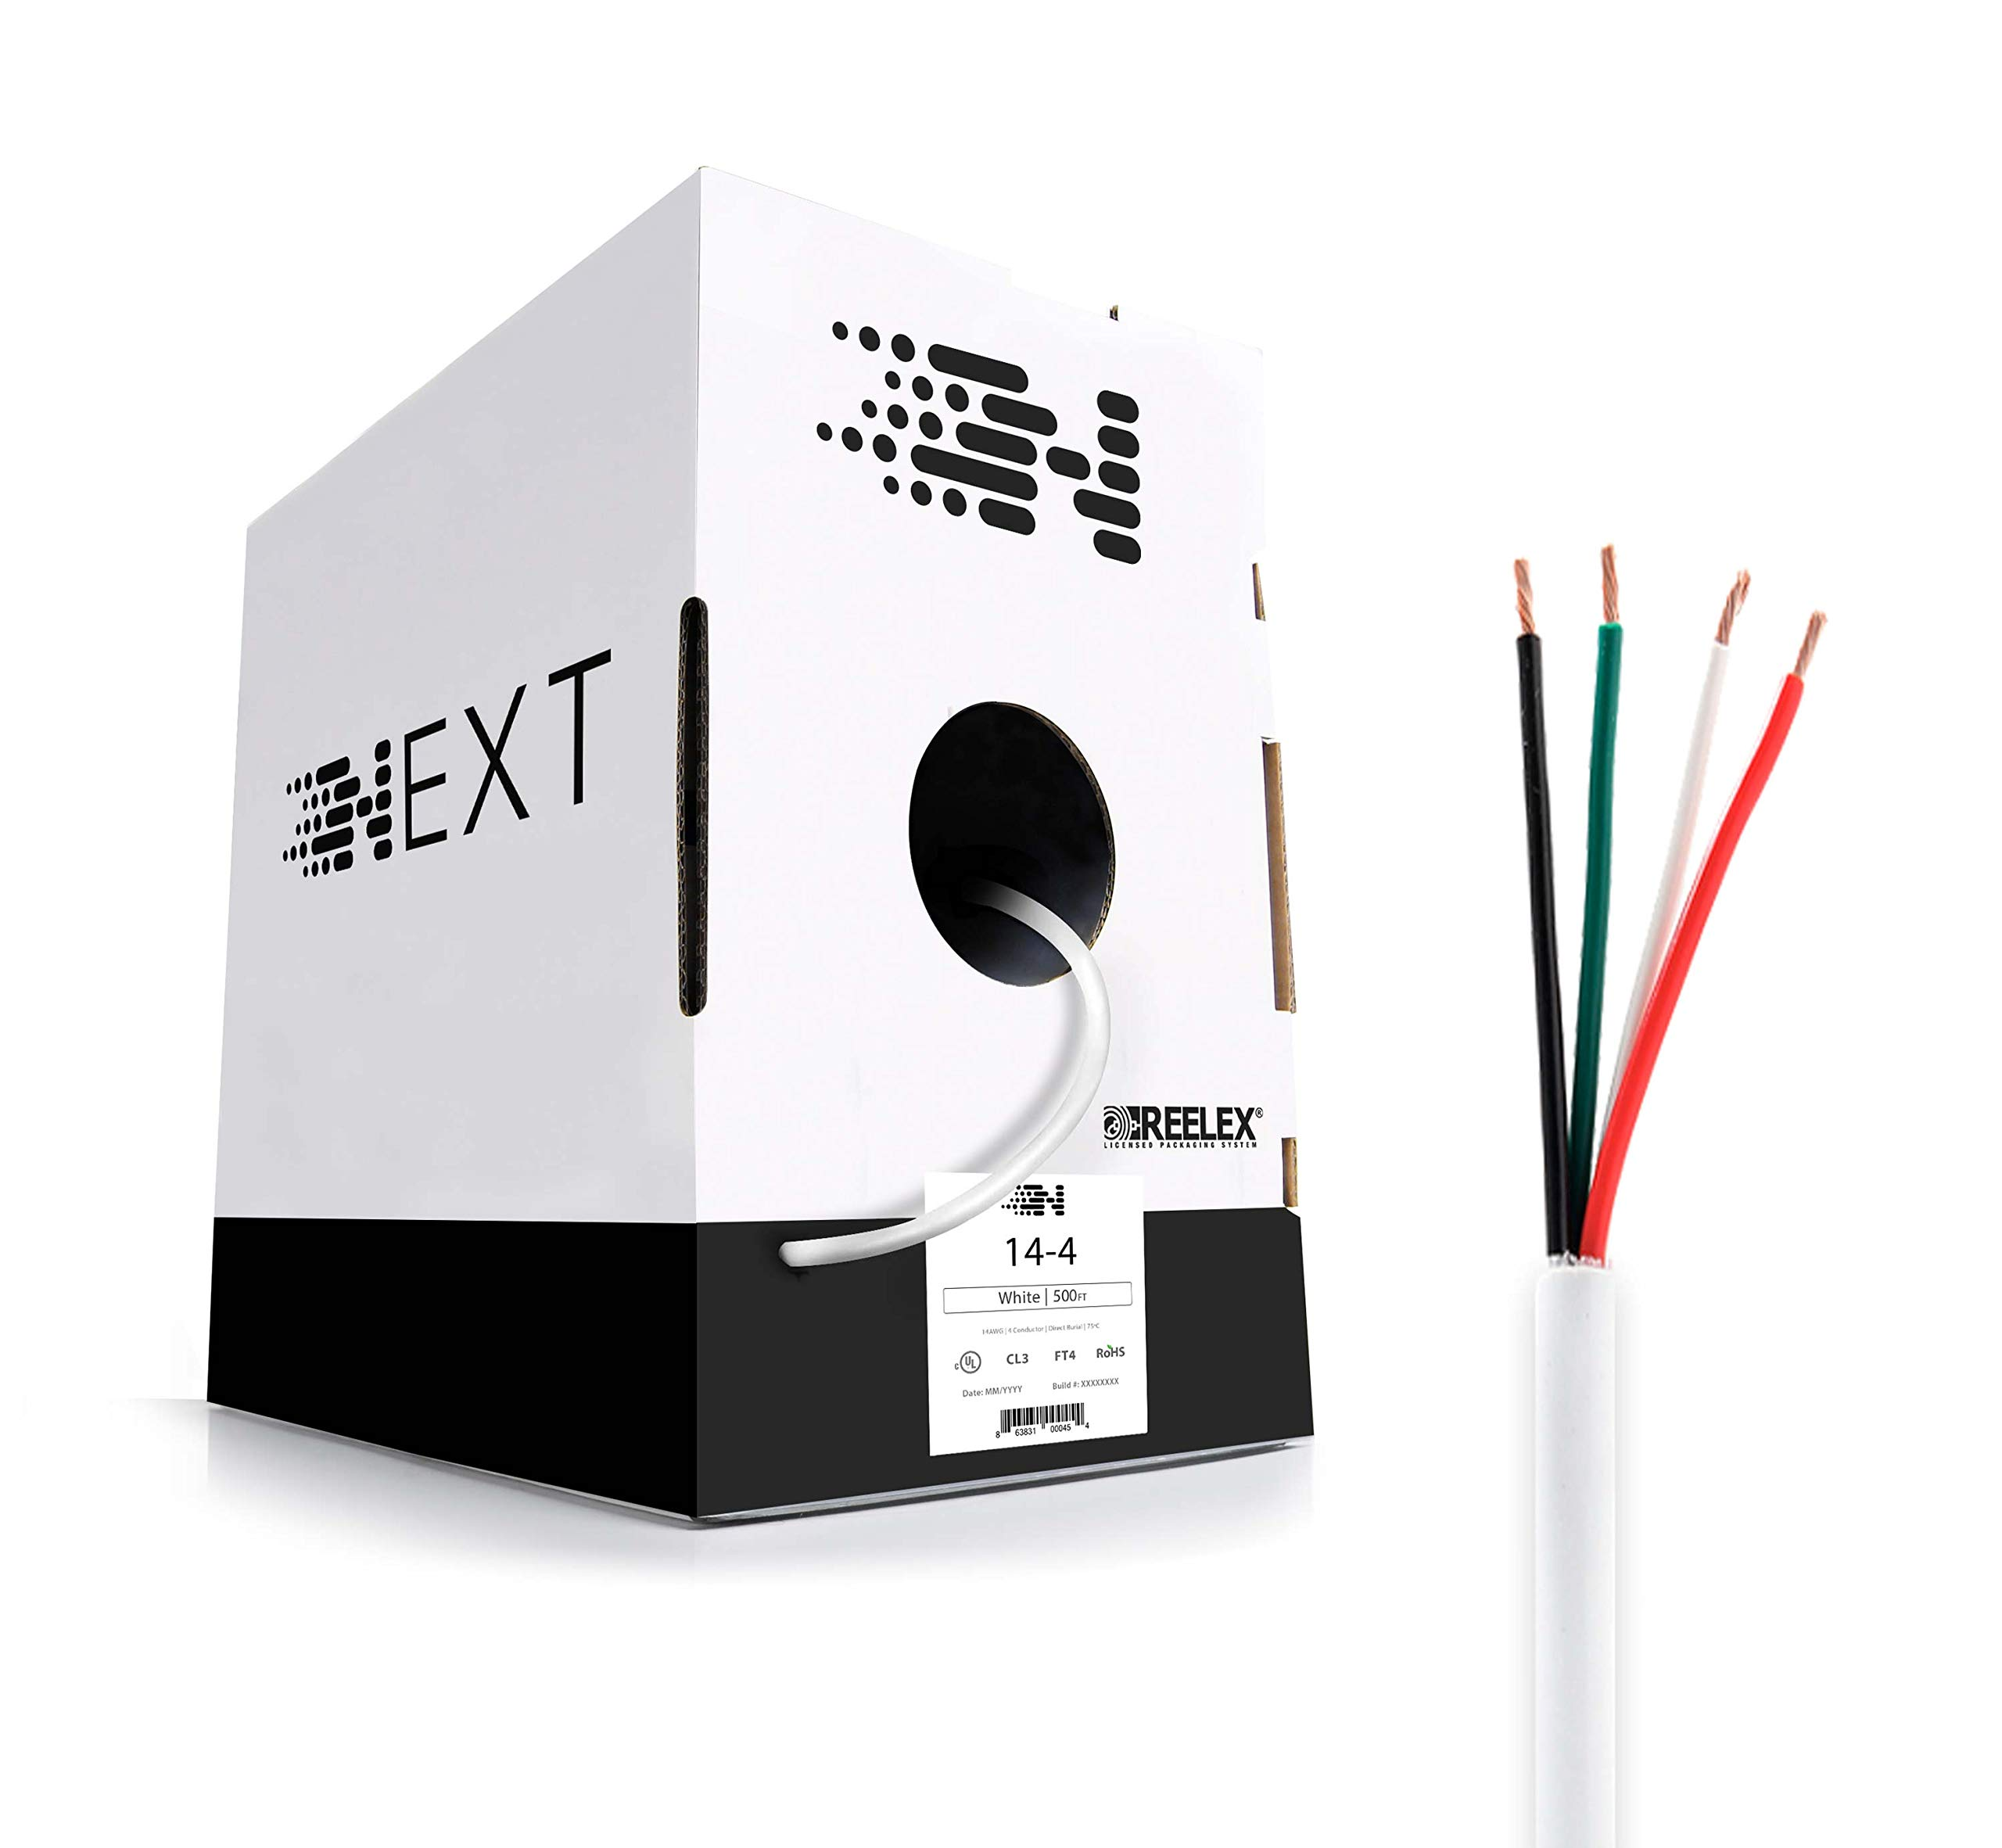 Next 14-4 Speaker Wire - in Wall (CL3) and Outdoor/In Ground (Direct Burial) Rated - Oxygen-Free Copper - 500 Foot Bulk Wire Pull Box - White by Next (Image #1)